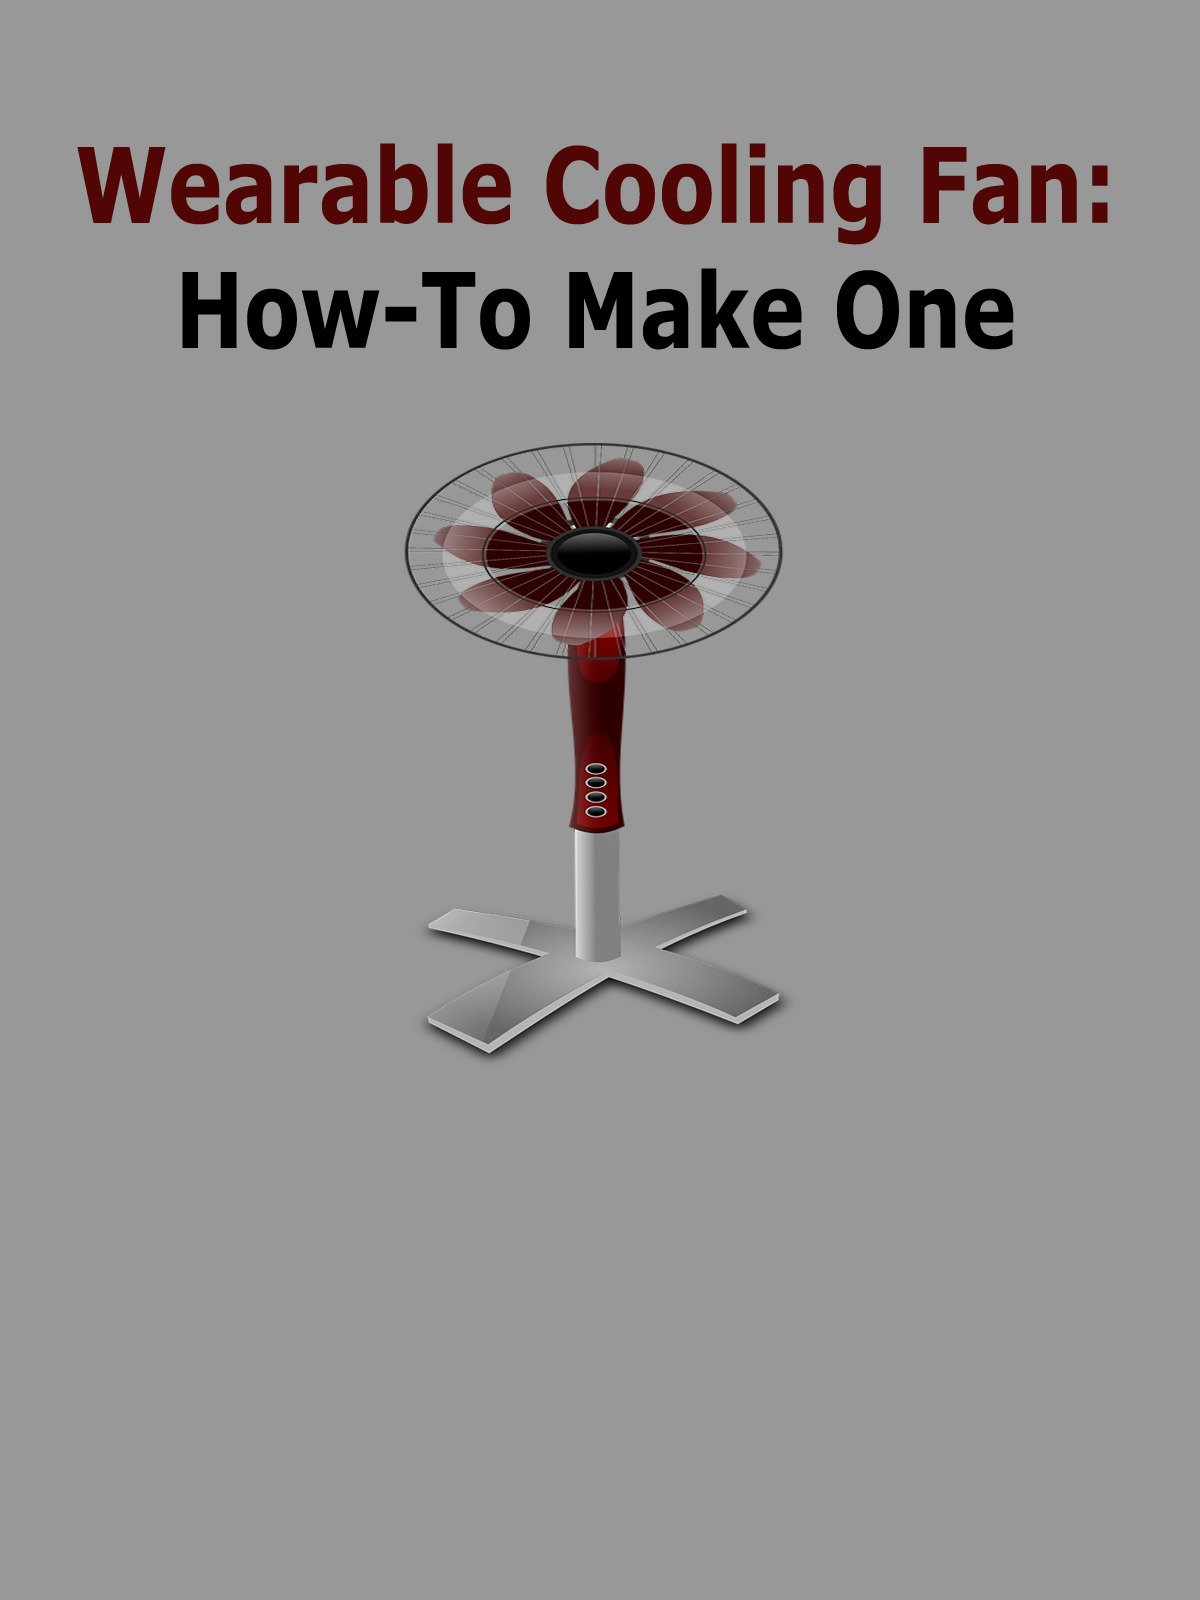 Wearable Cooling Fan: How To Make One